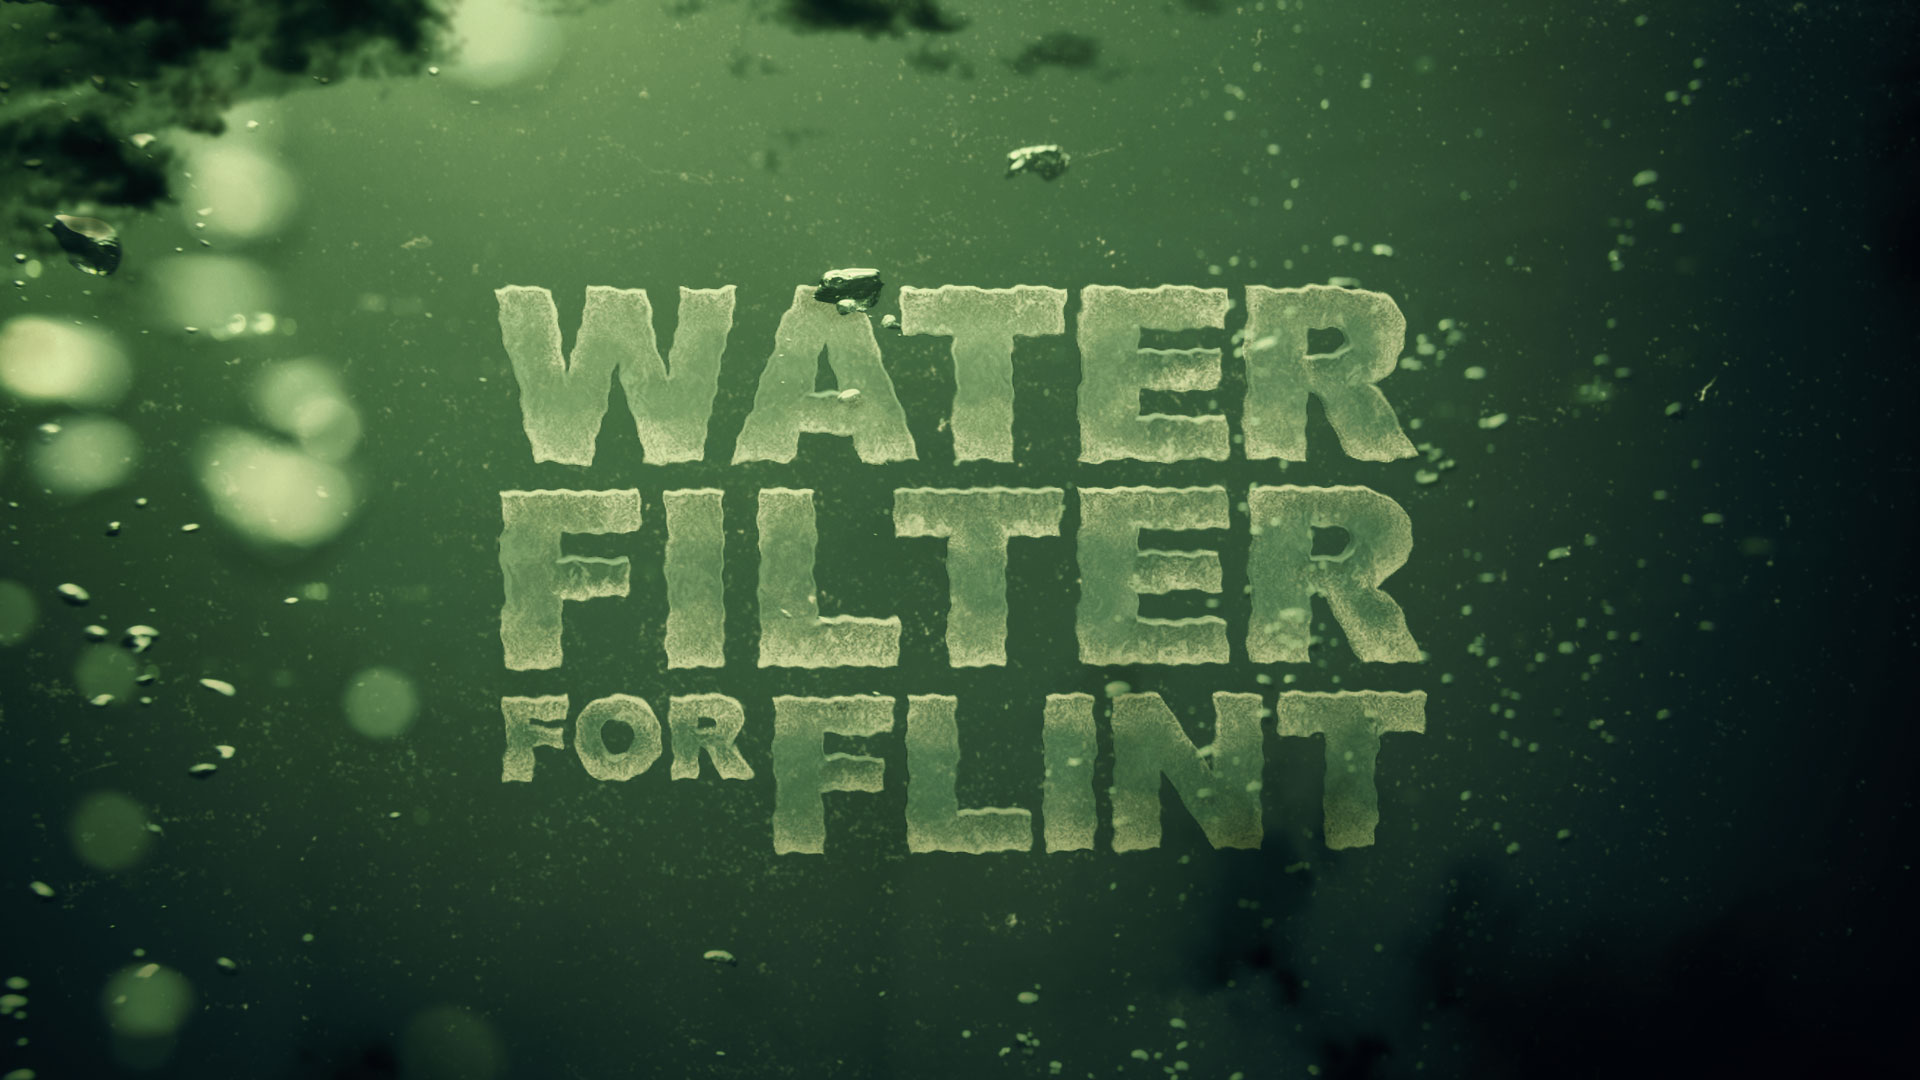 Water-Filter-for-Flint-020116-cc